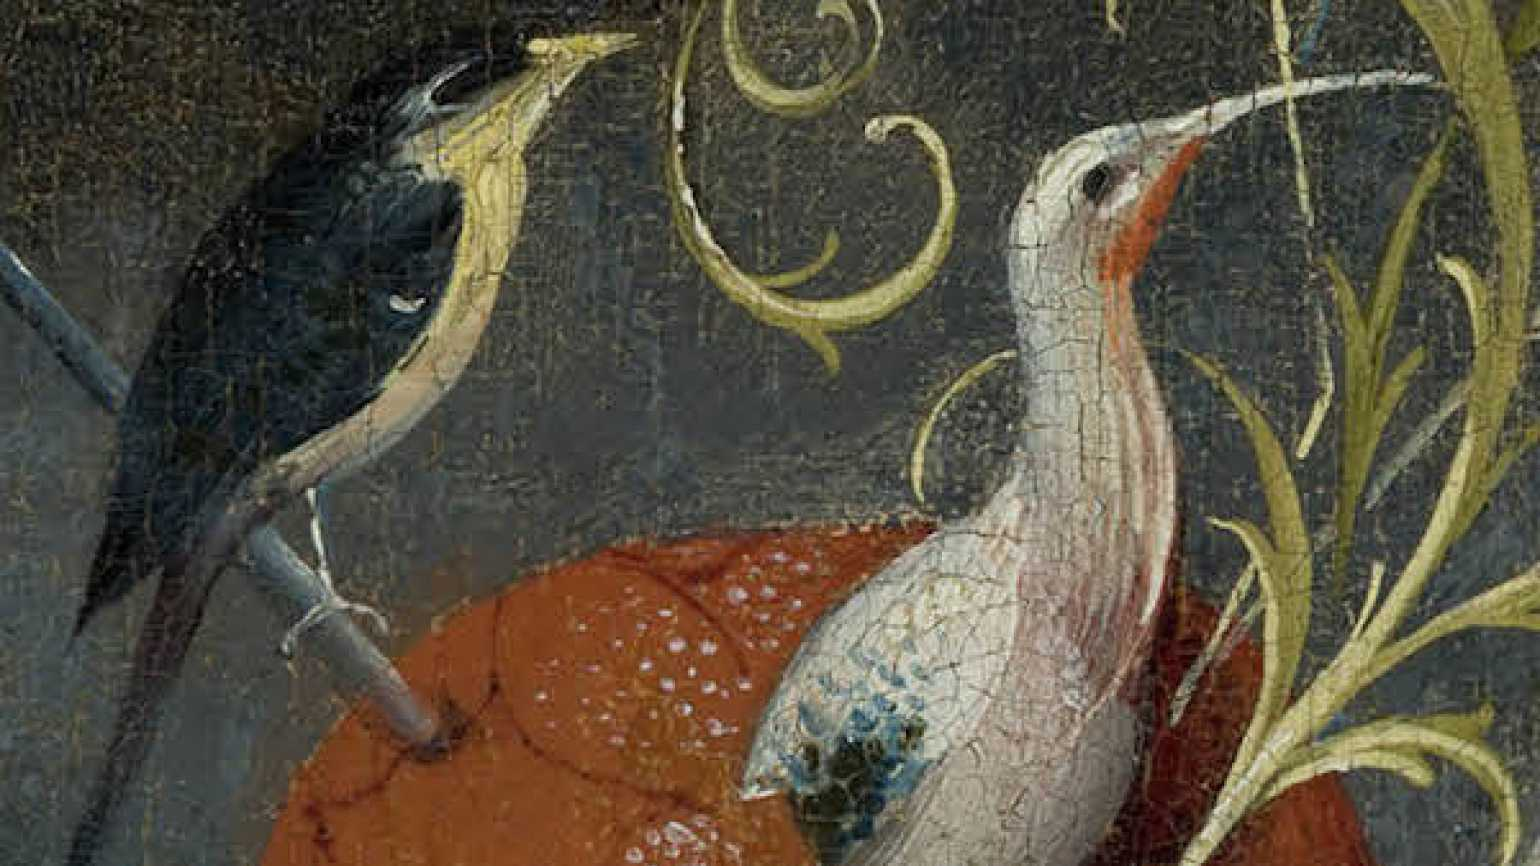 Detail of birds from the painting, The Garden of Earthly Delights, by Hieronymus Bosch, Museo del Prado.